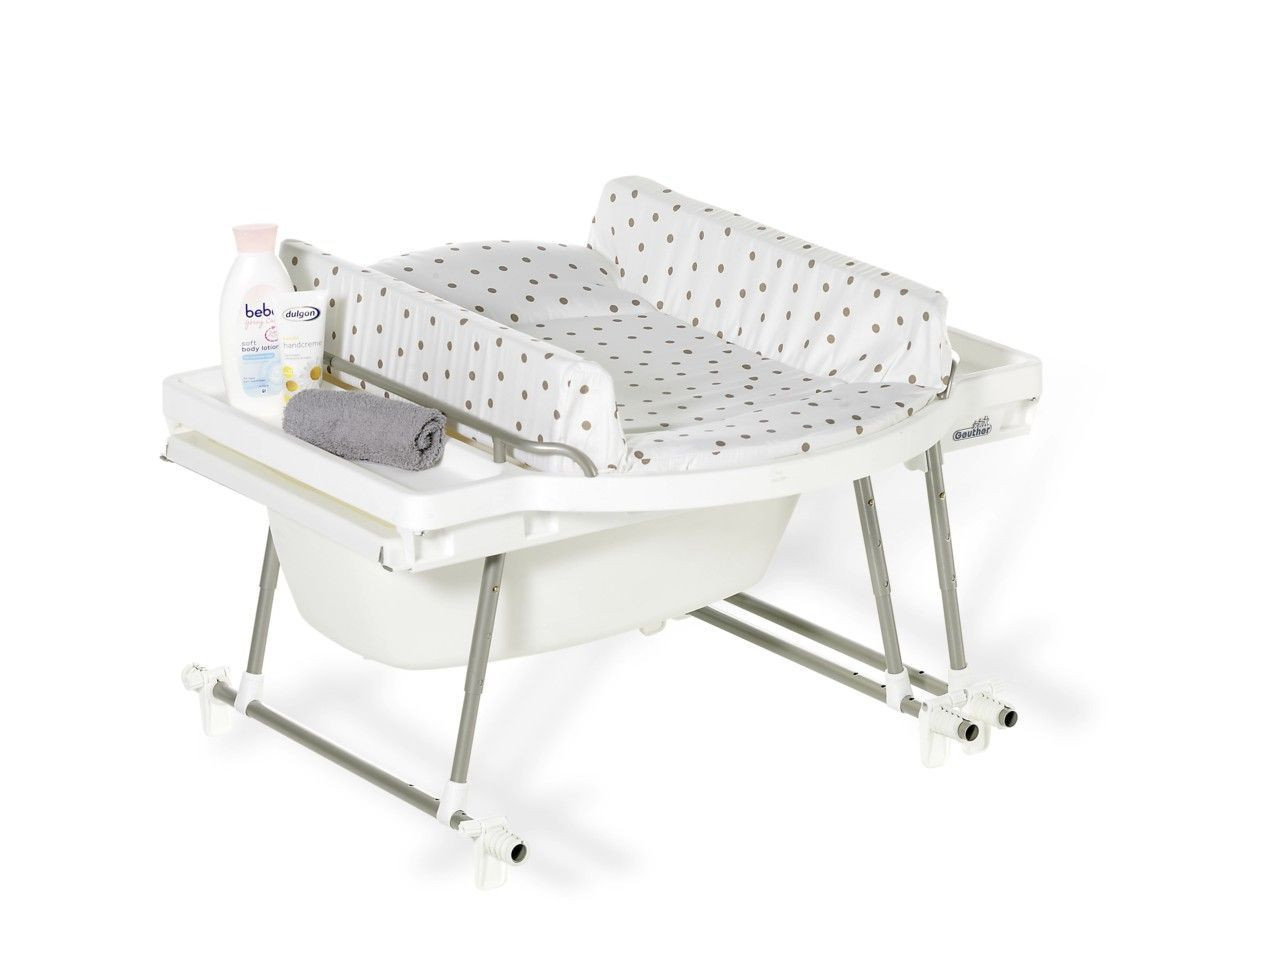 Ensemble baignoire table langer aqualino geuther bambinou - Lit bebe avec table a langer ...